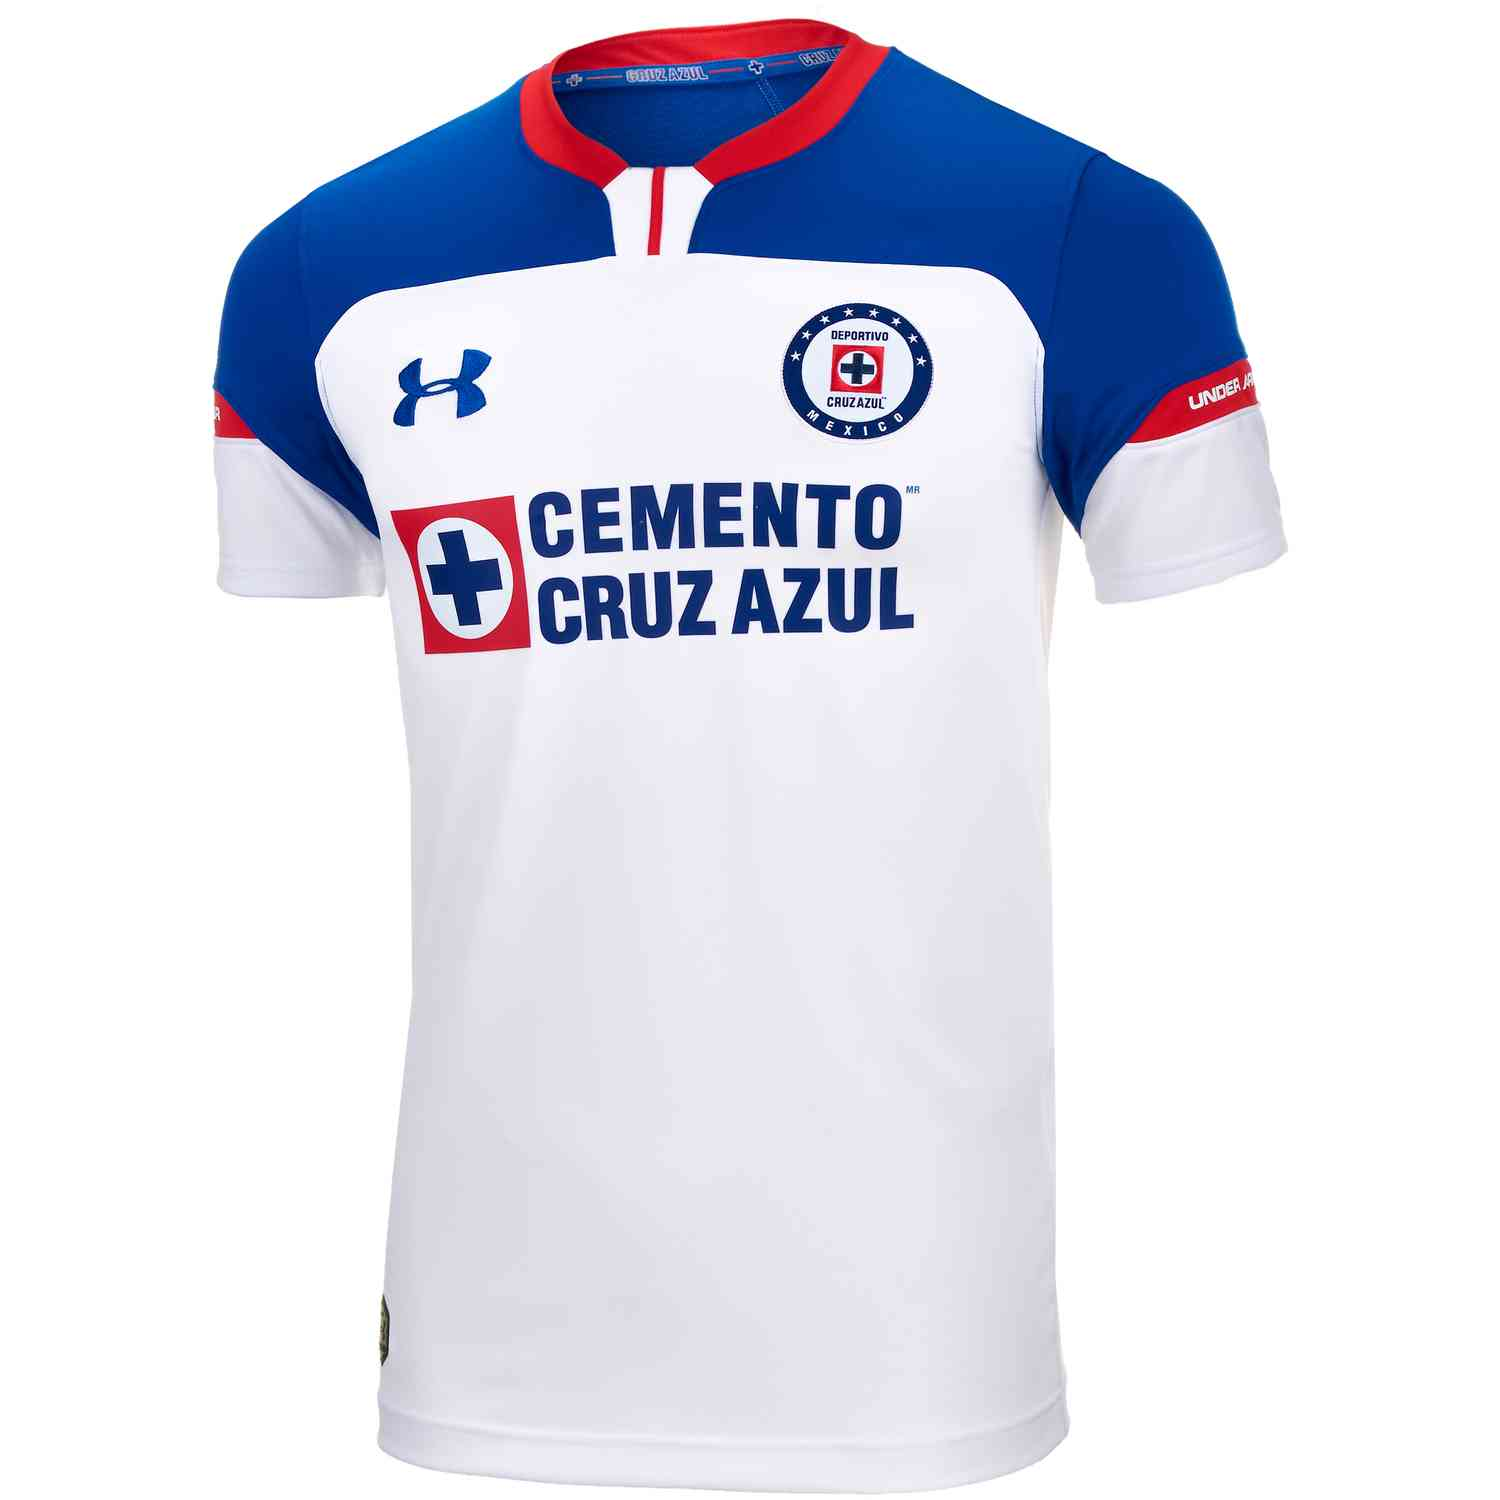 67495ae0e Under Armour Cruz Azul Away Jersey 2018-19 - SoccerPro